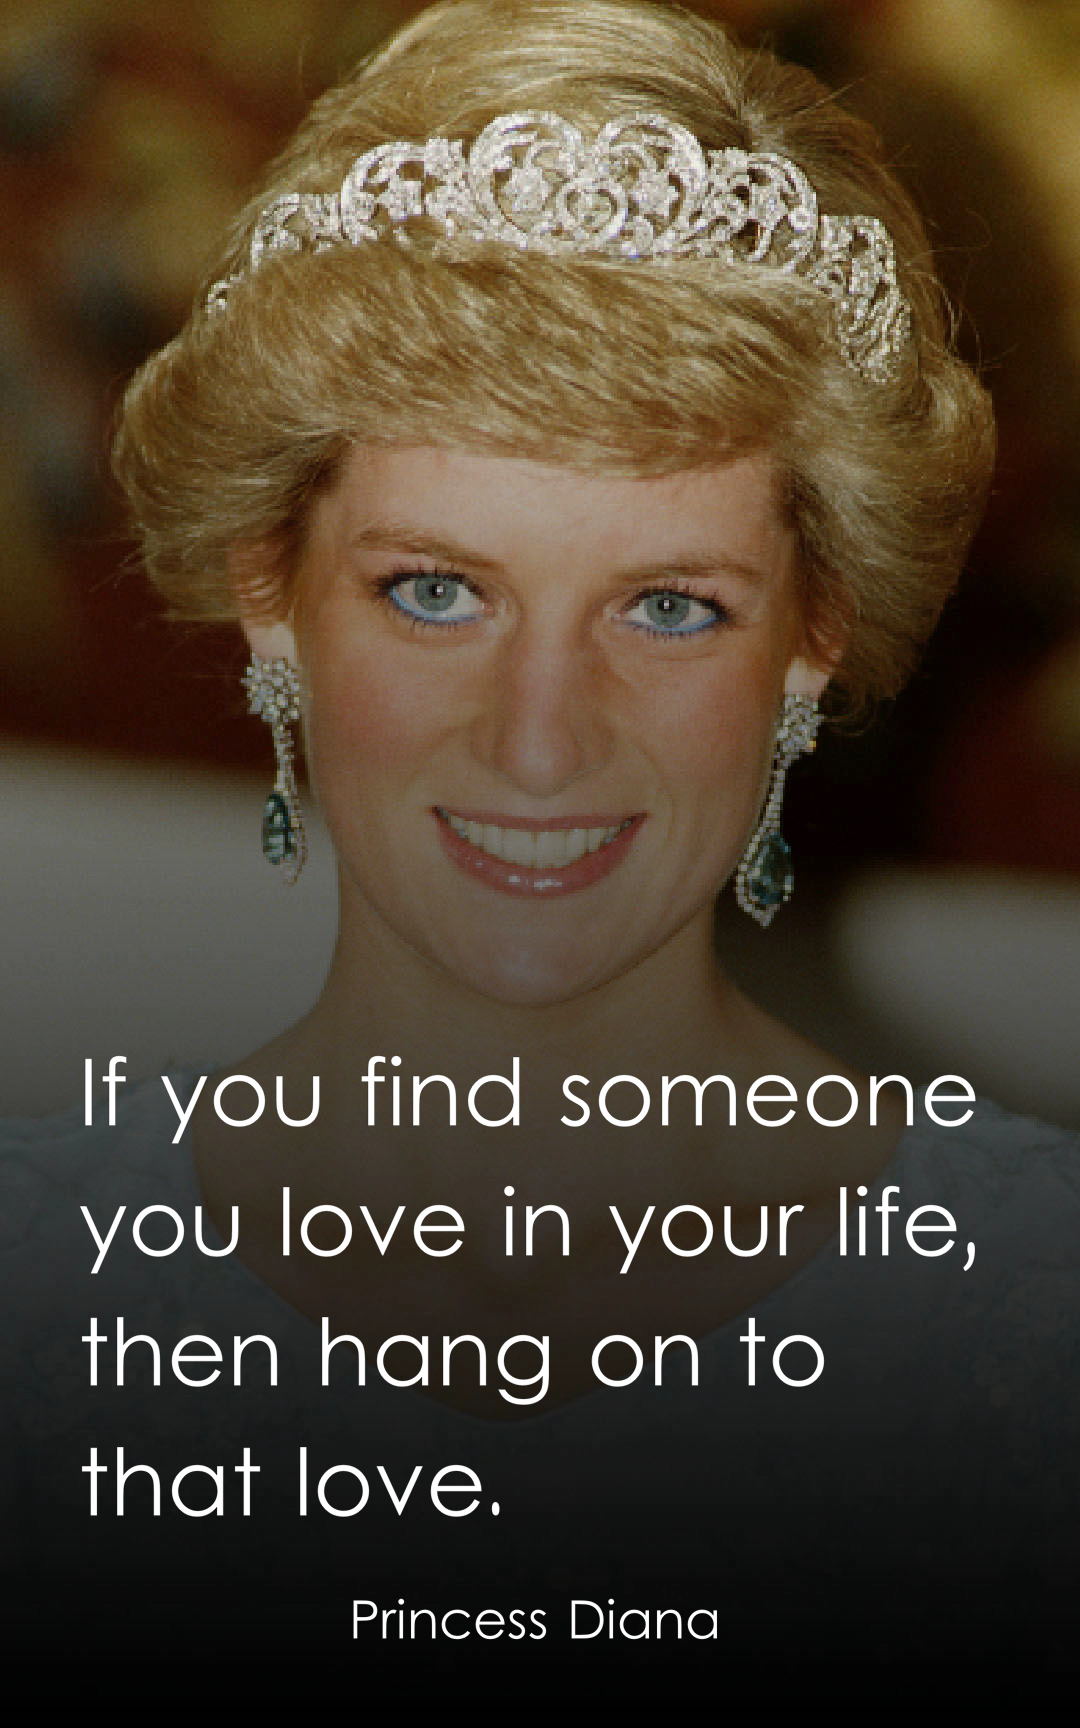 15 Inspirational Princess Diana Quotes